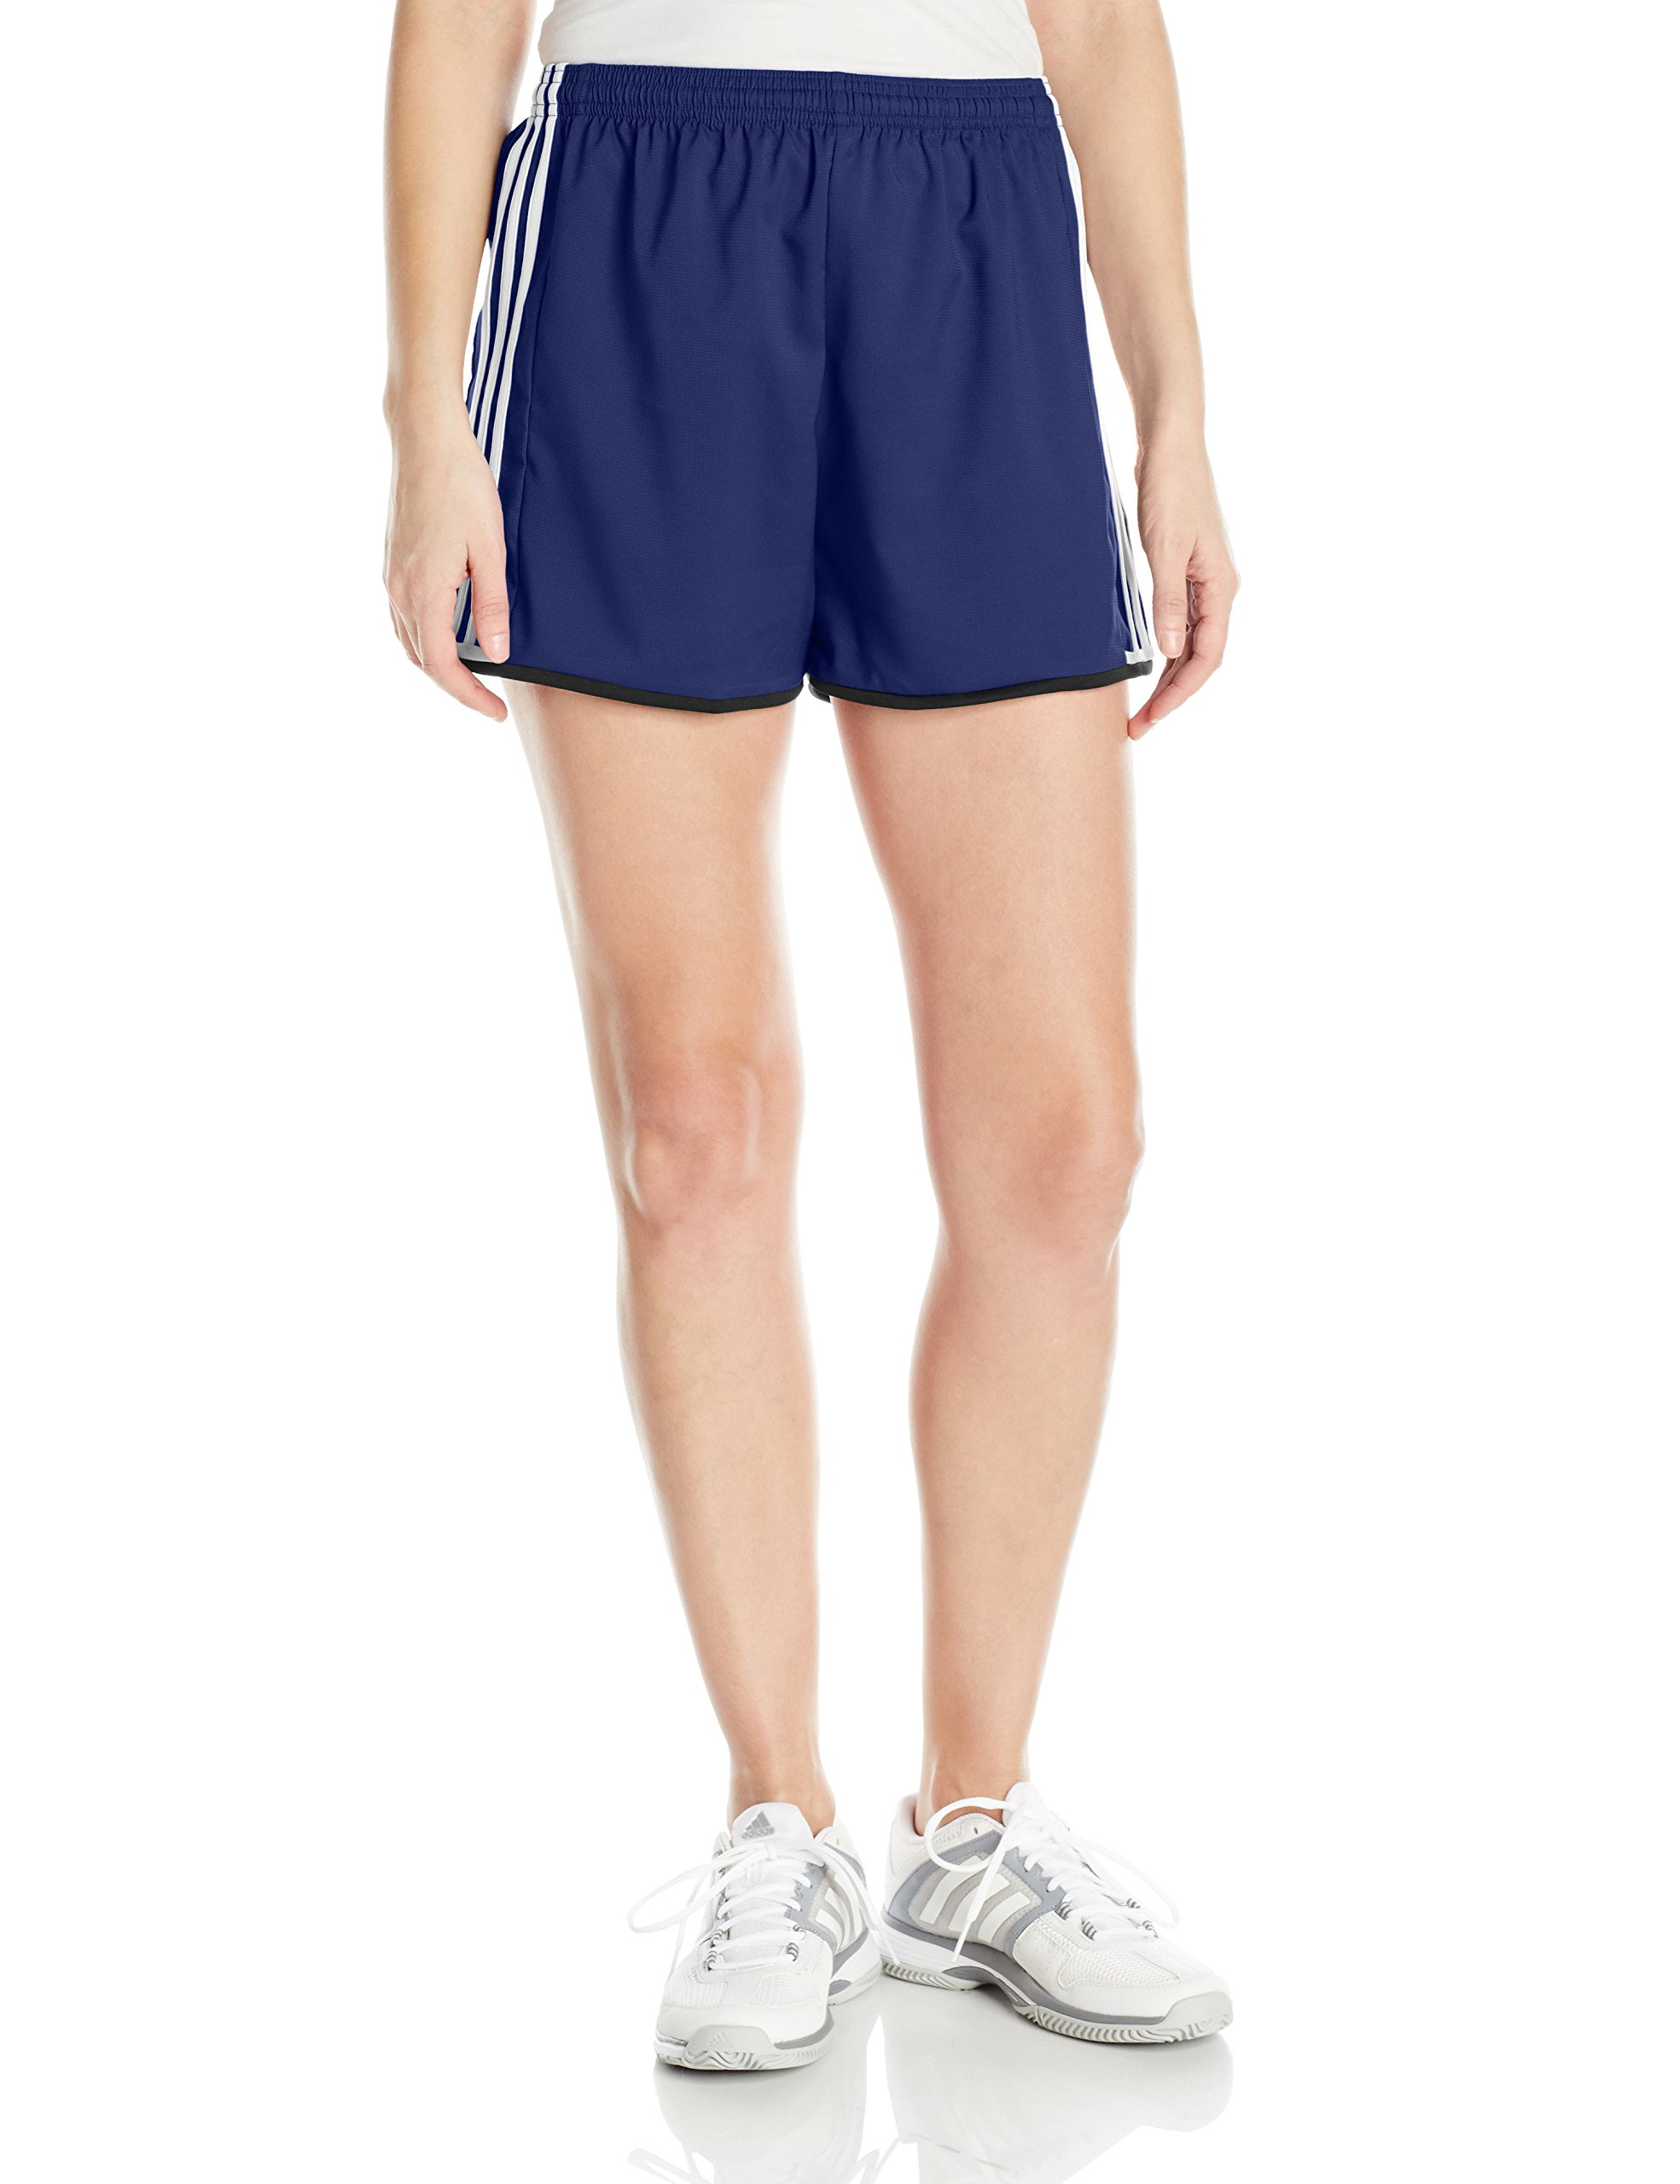 adidas Women's Soccer Condivo 16 Shorts, Dark Blue/White, Small